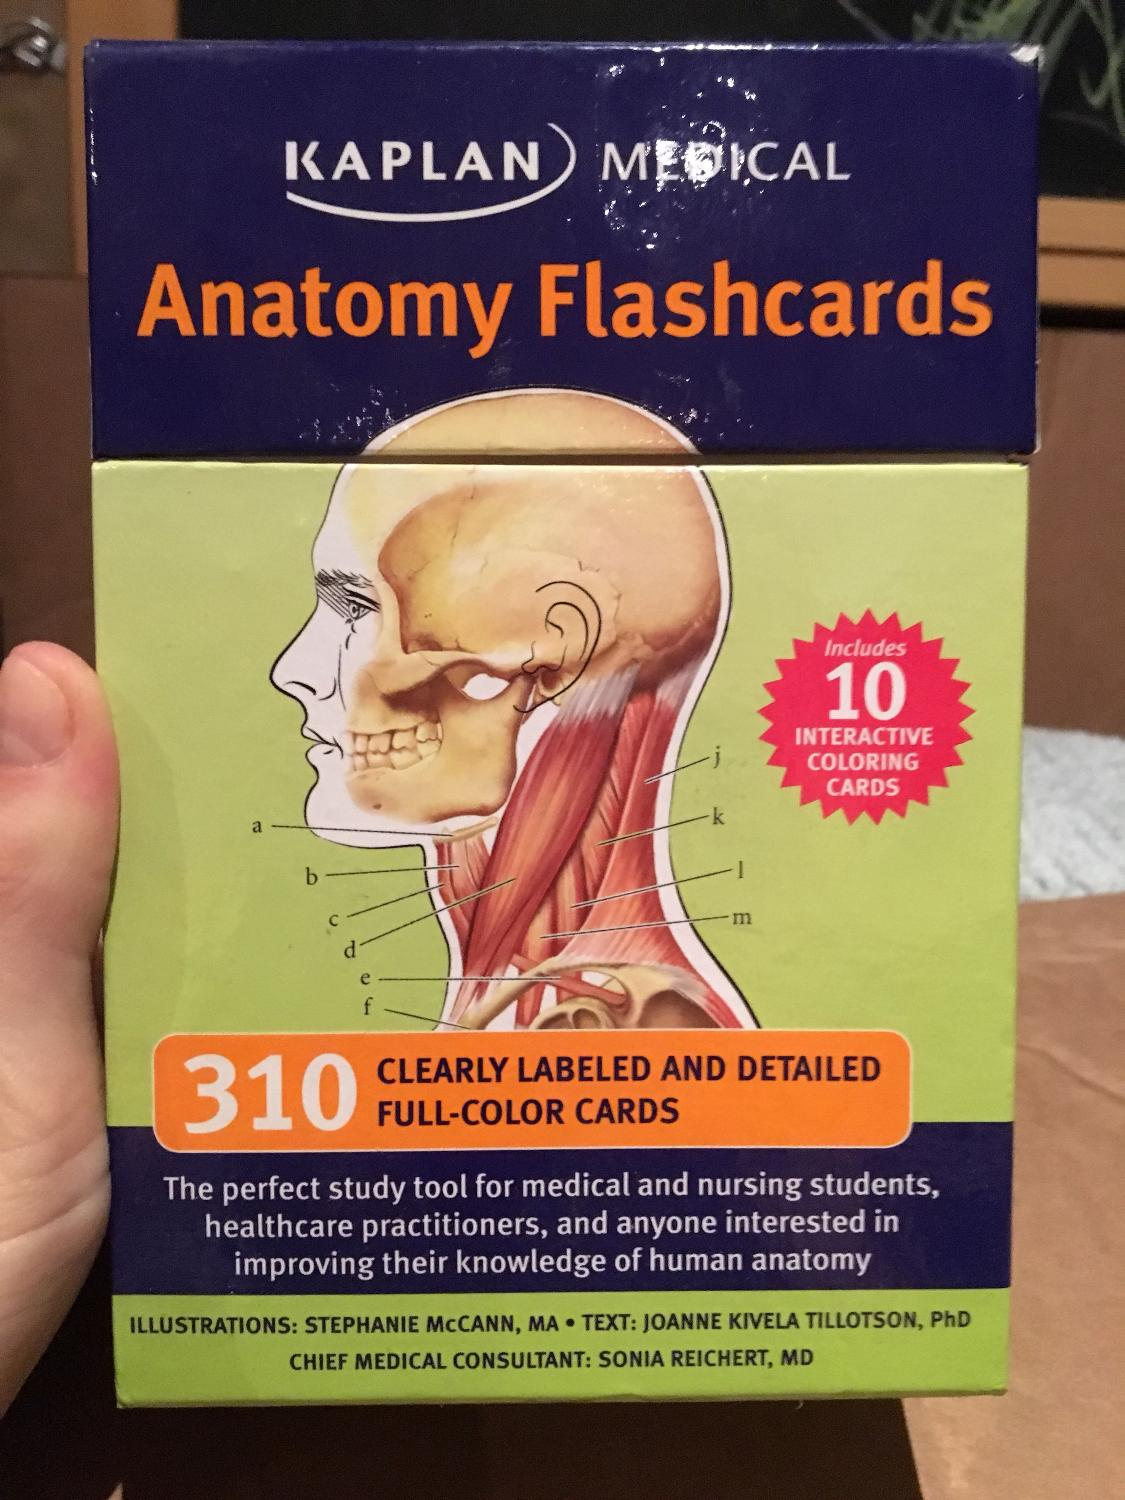 Best Anatomy Flashcards Never Been Used for sale in Oshawa, Ontario ...